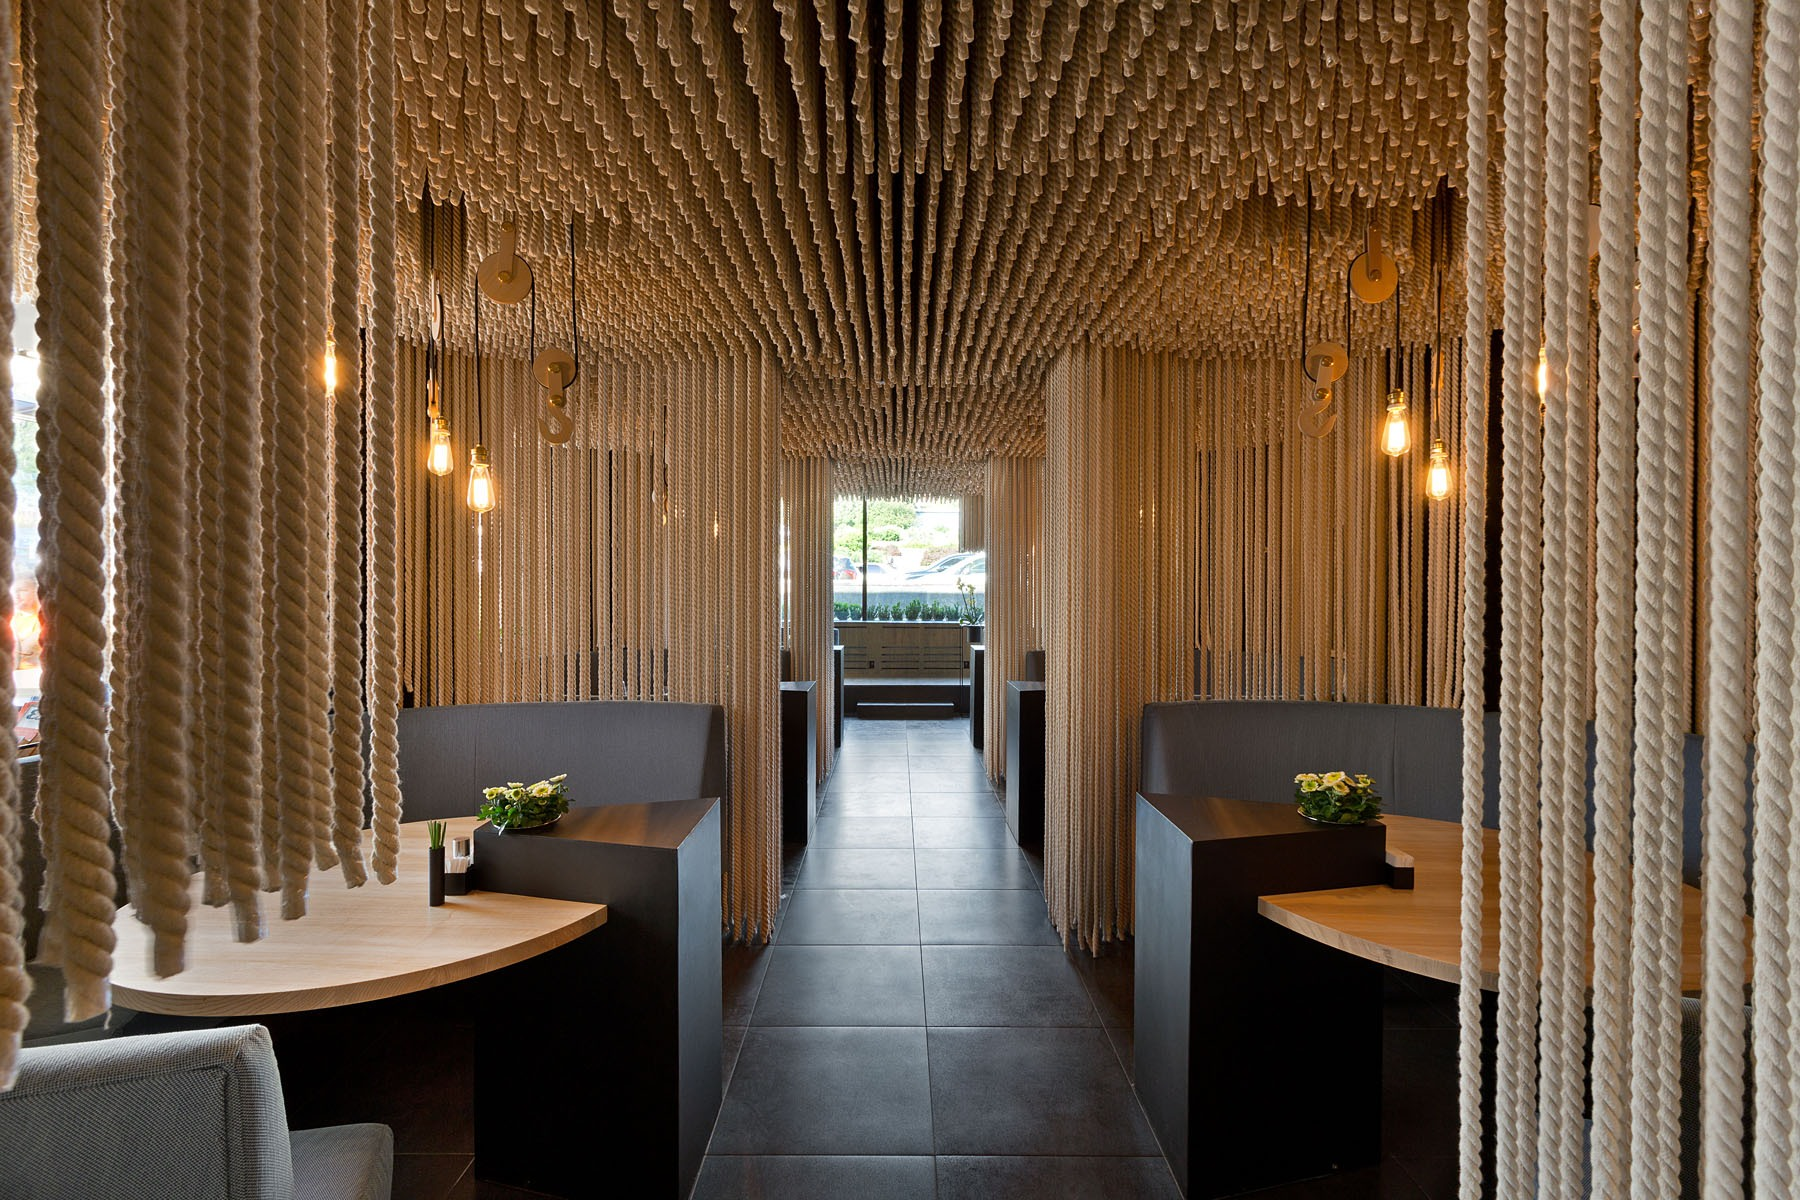 Rope was used to create room dividers and a ceiling installation in a modern restaurant.